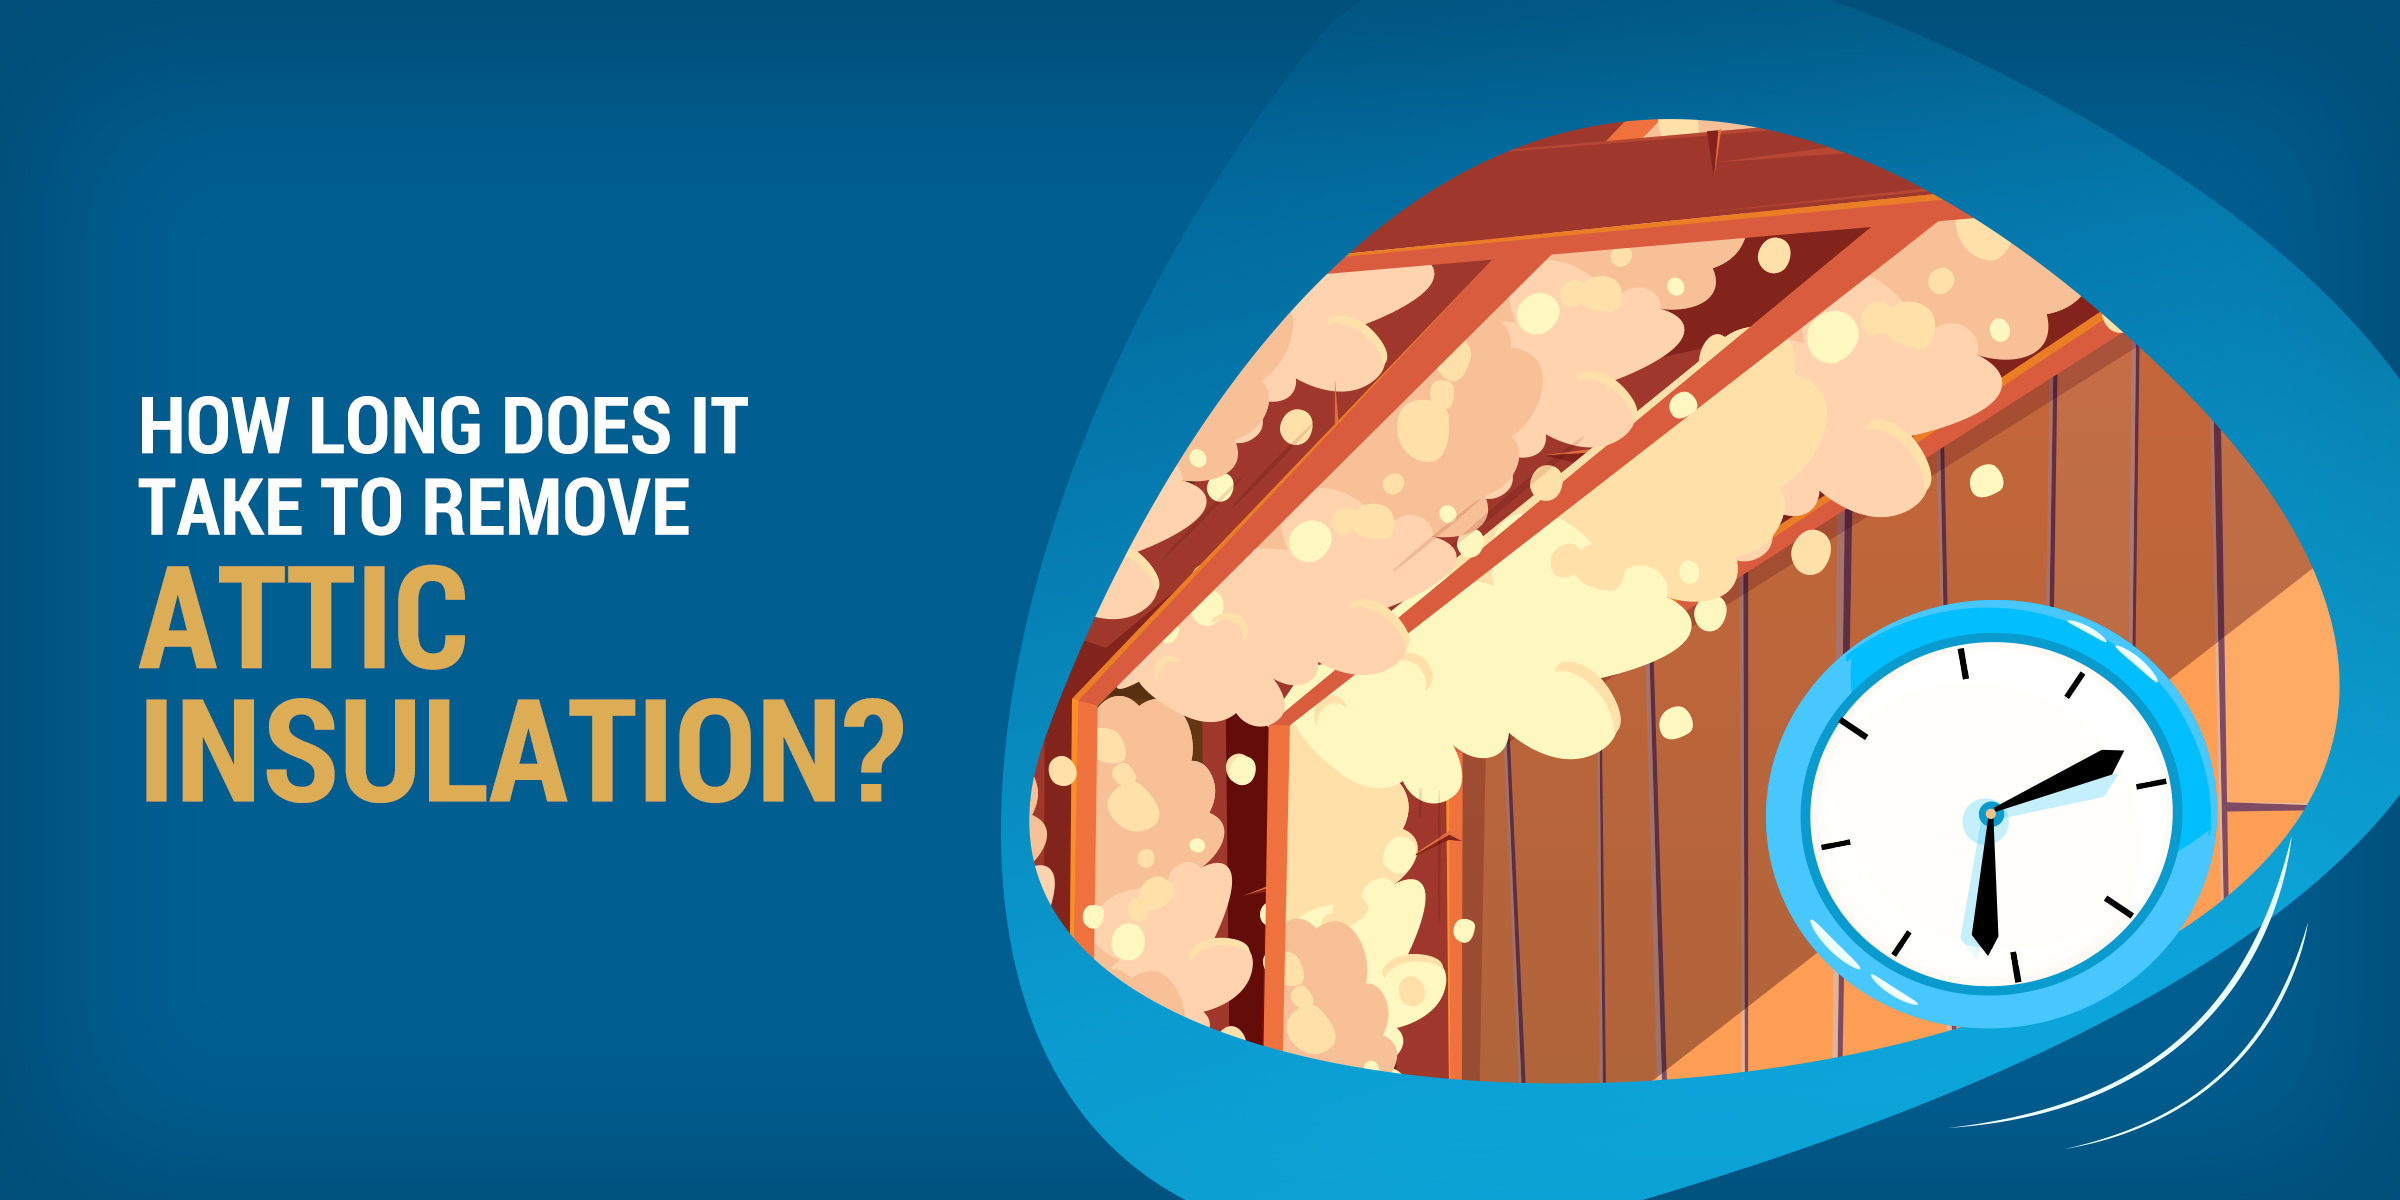 How Long Does it Take to Remove Attic Insulation?